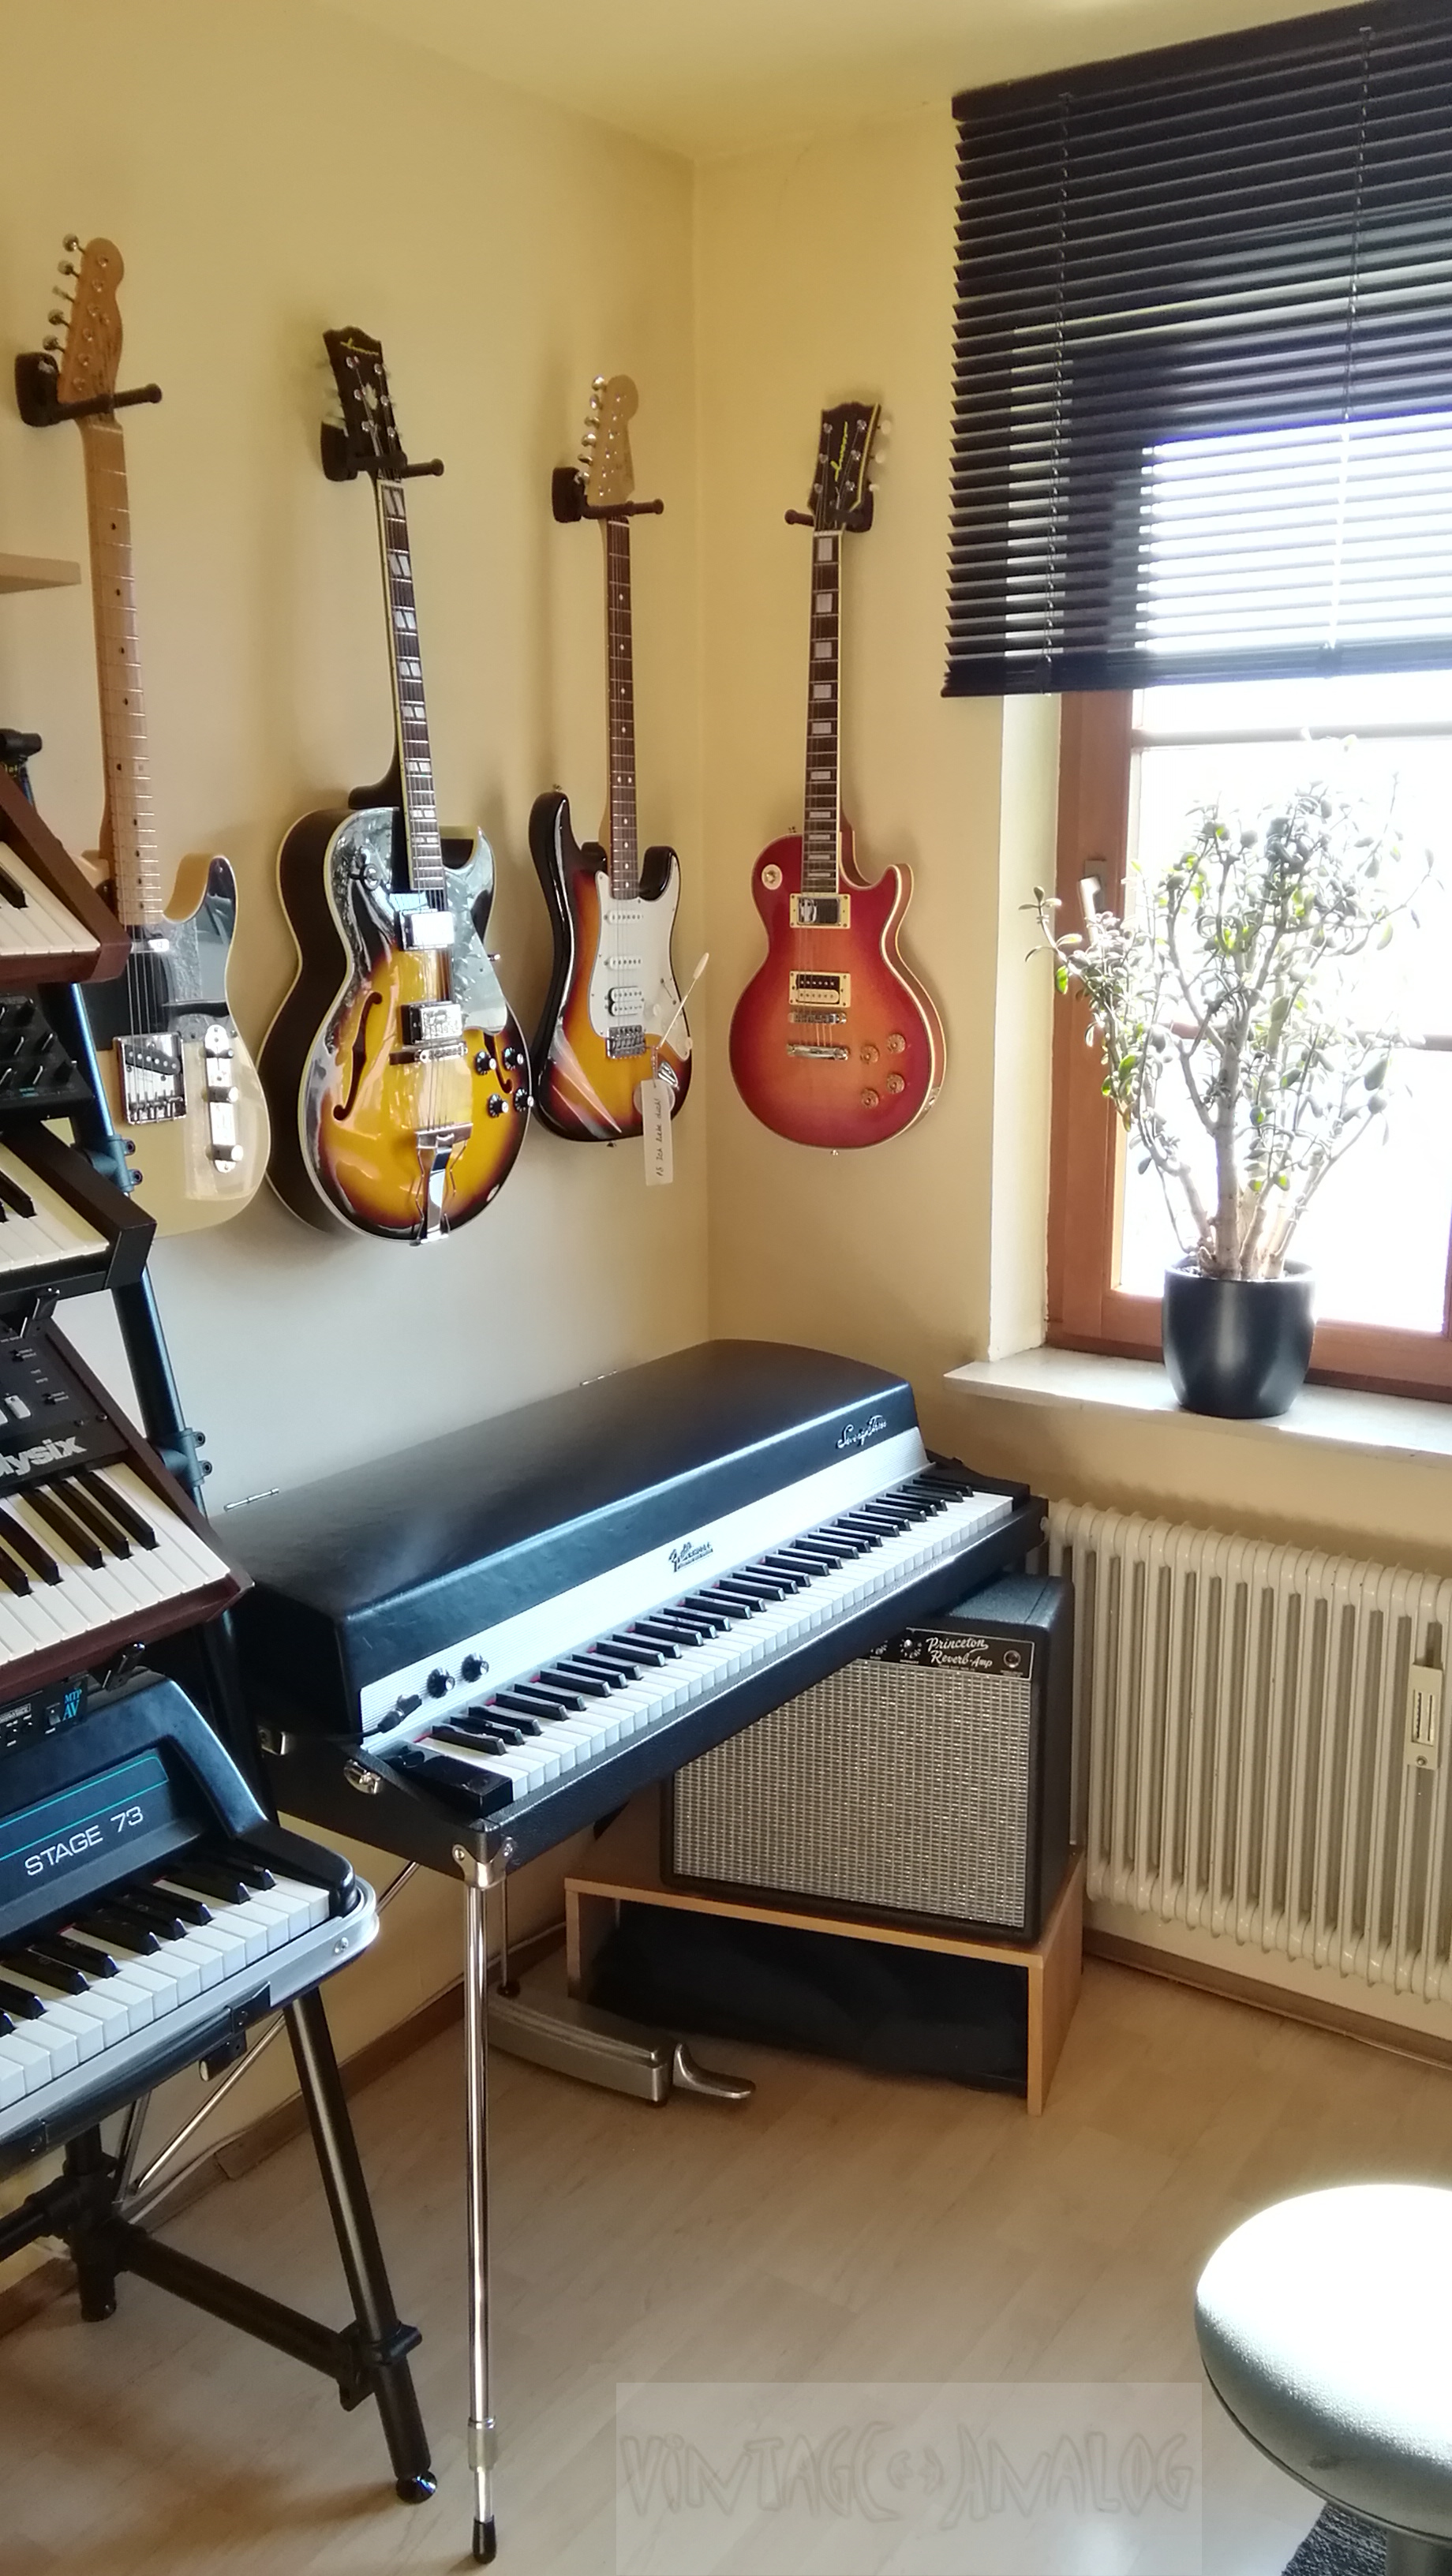 Guitars and Effects - The Study Room Studio Home